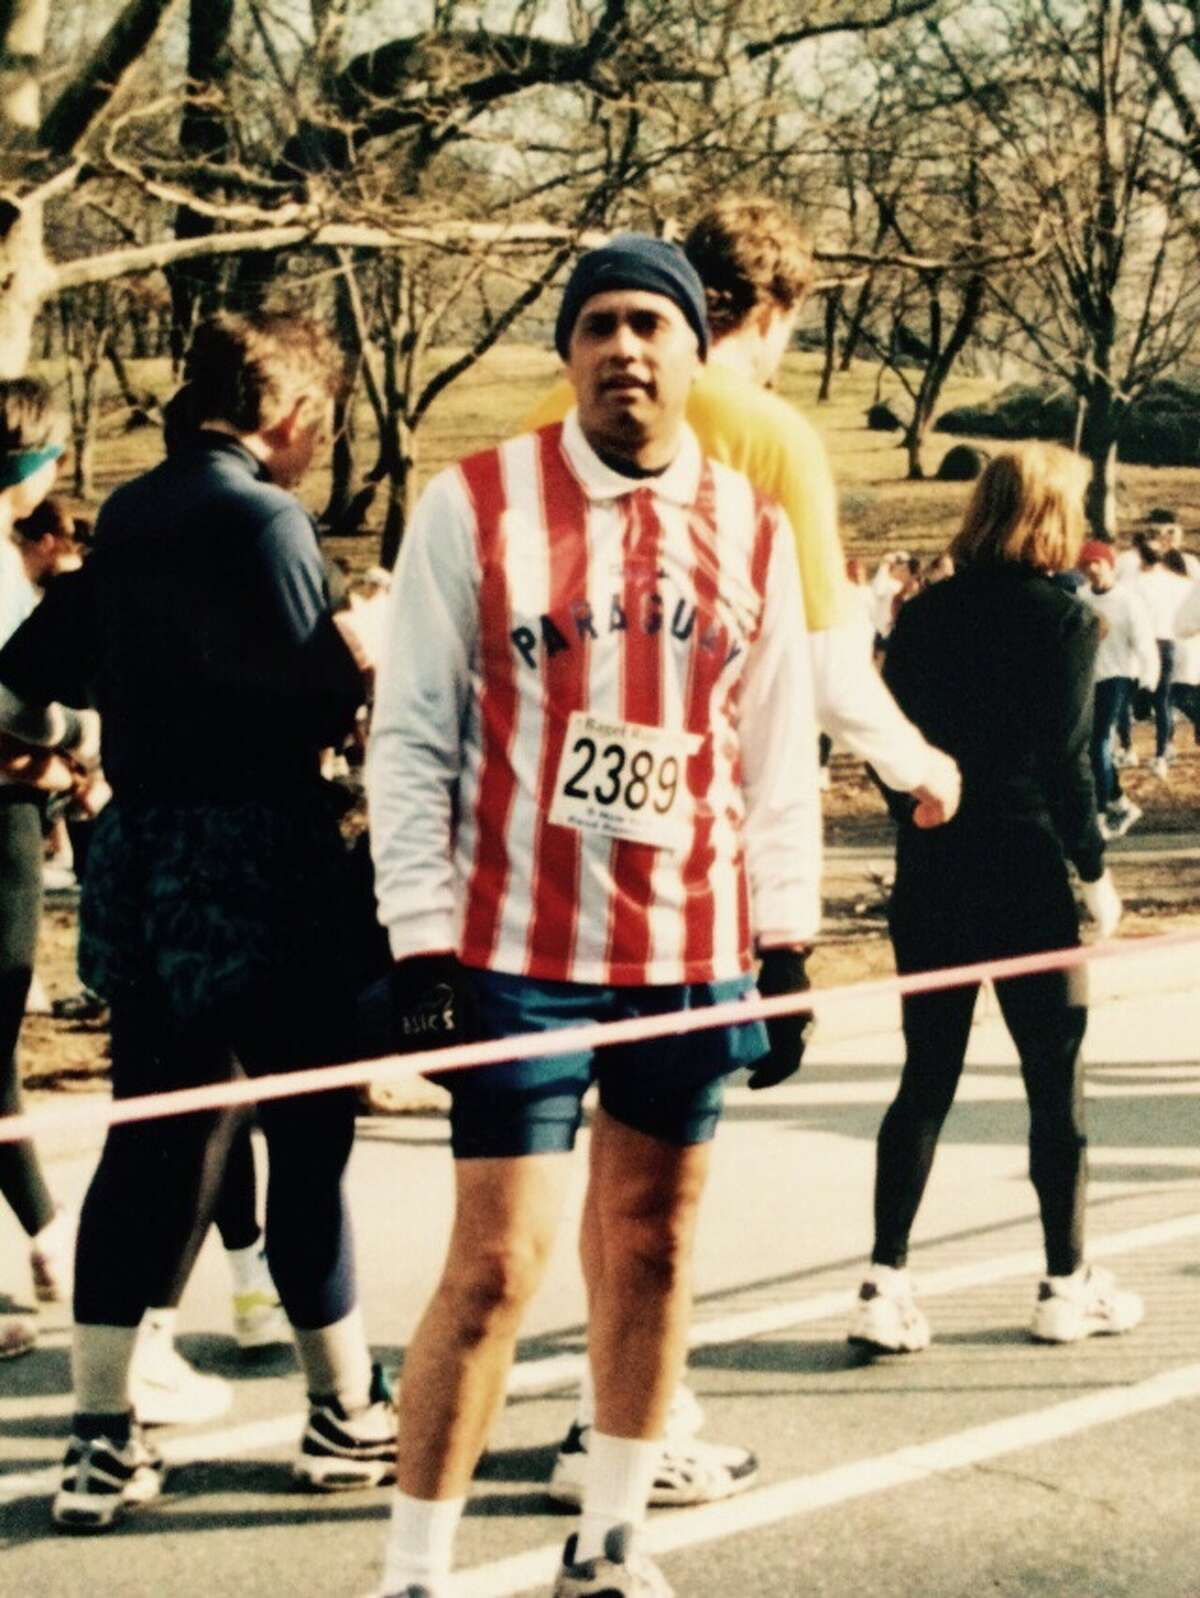 Stamford resident Hugo Mujica will participate in his 100th race this Sunday when he takes part in the TCS New York City Marathon.